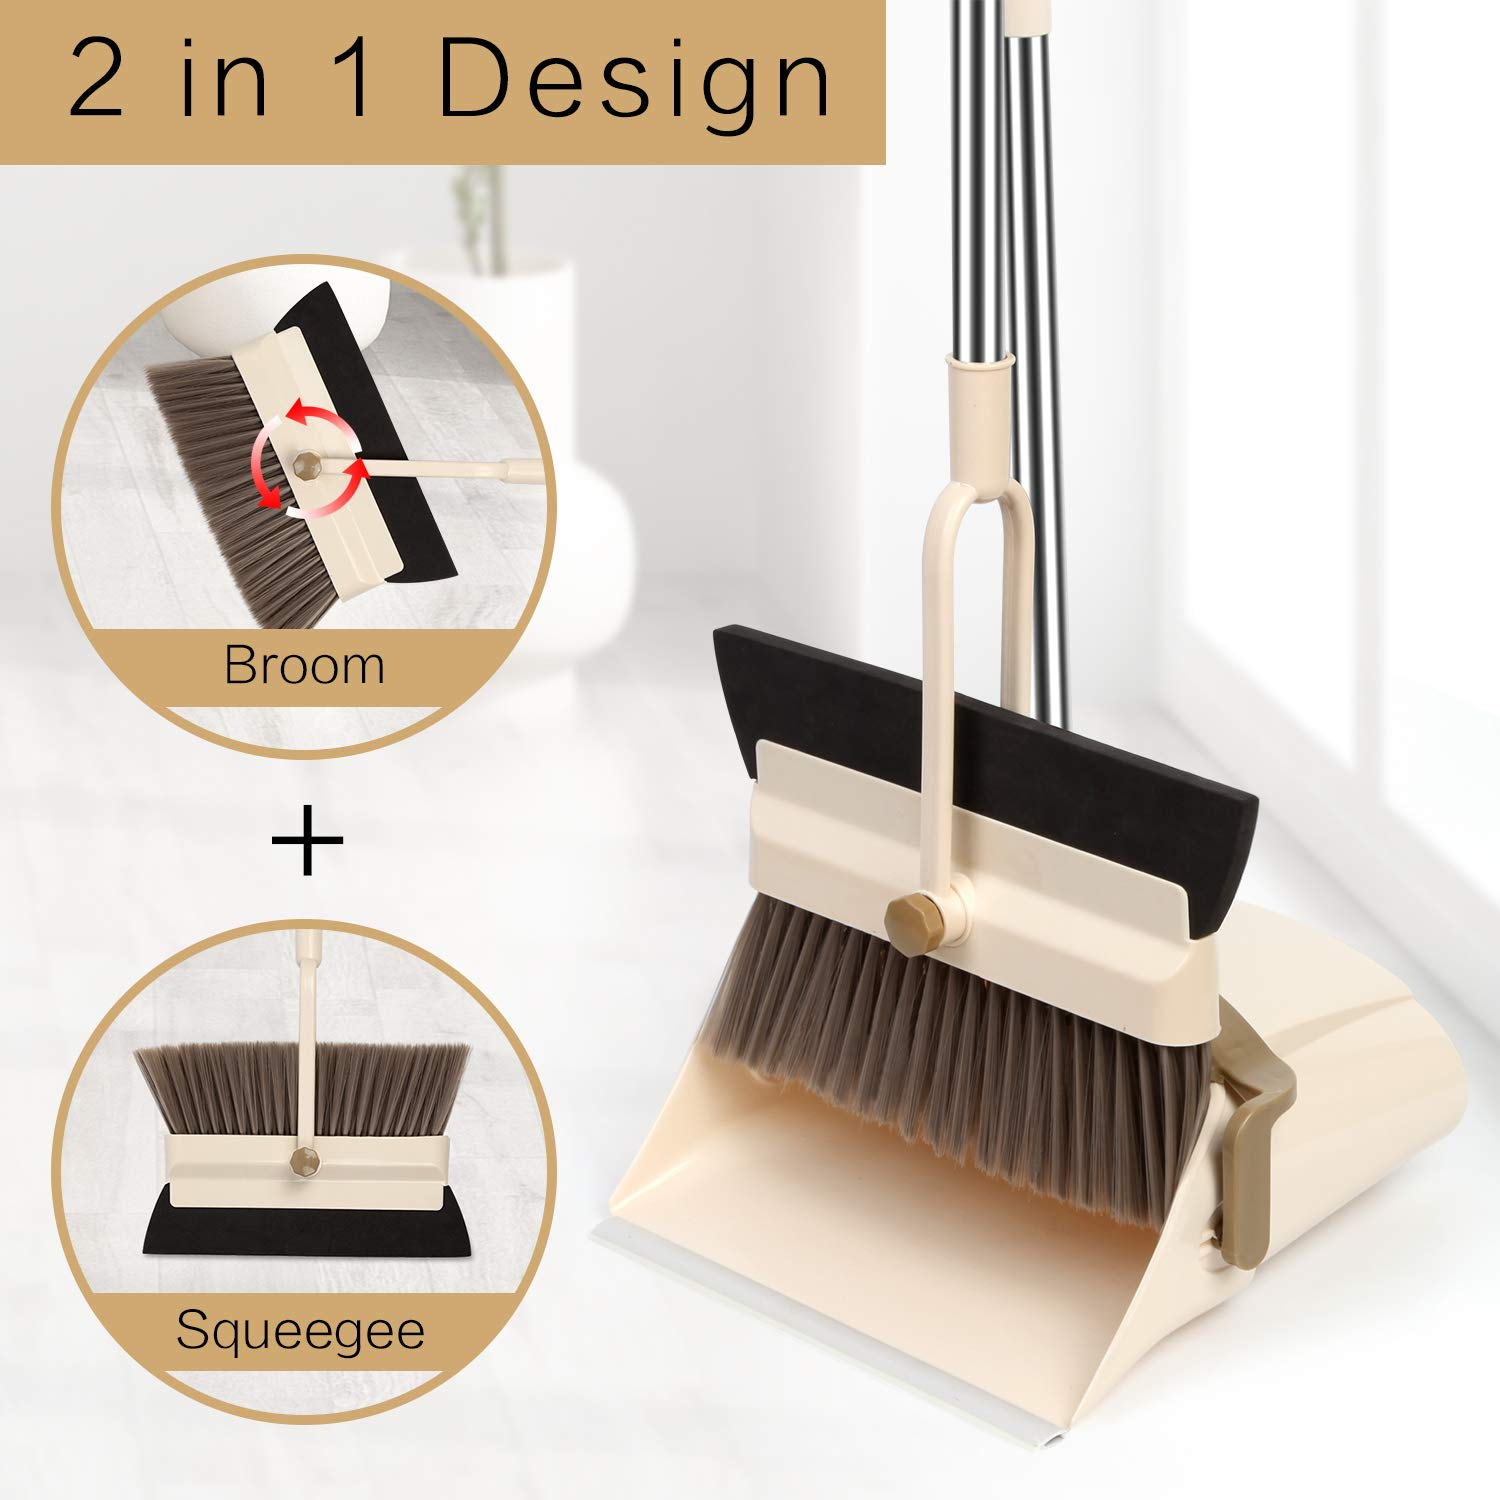 MOCREO Dustpan and Broom and Floor Squeegee Set, Dustpan Cleans Broom Combo with Long Handle For Home Kitchen Room/Office/Lobby Floor, Use Upright Stand Up Dustpan Broom & Squeegee Set by MOCREO (Image #2)